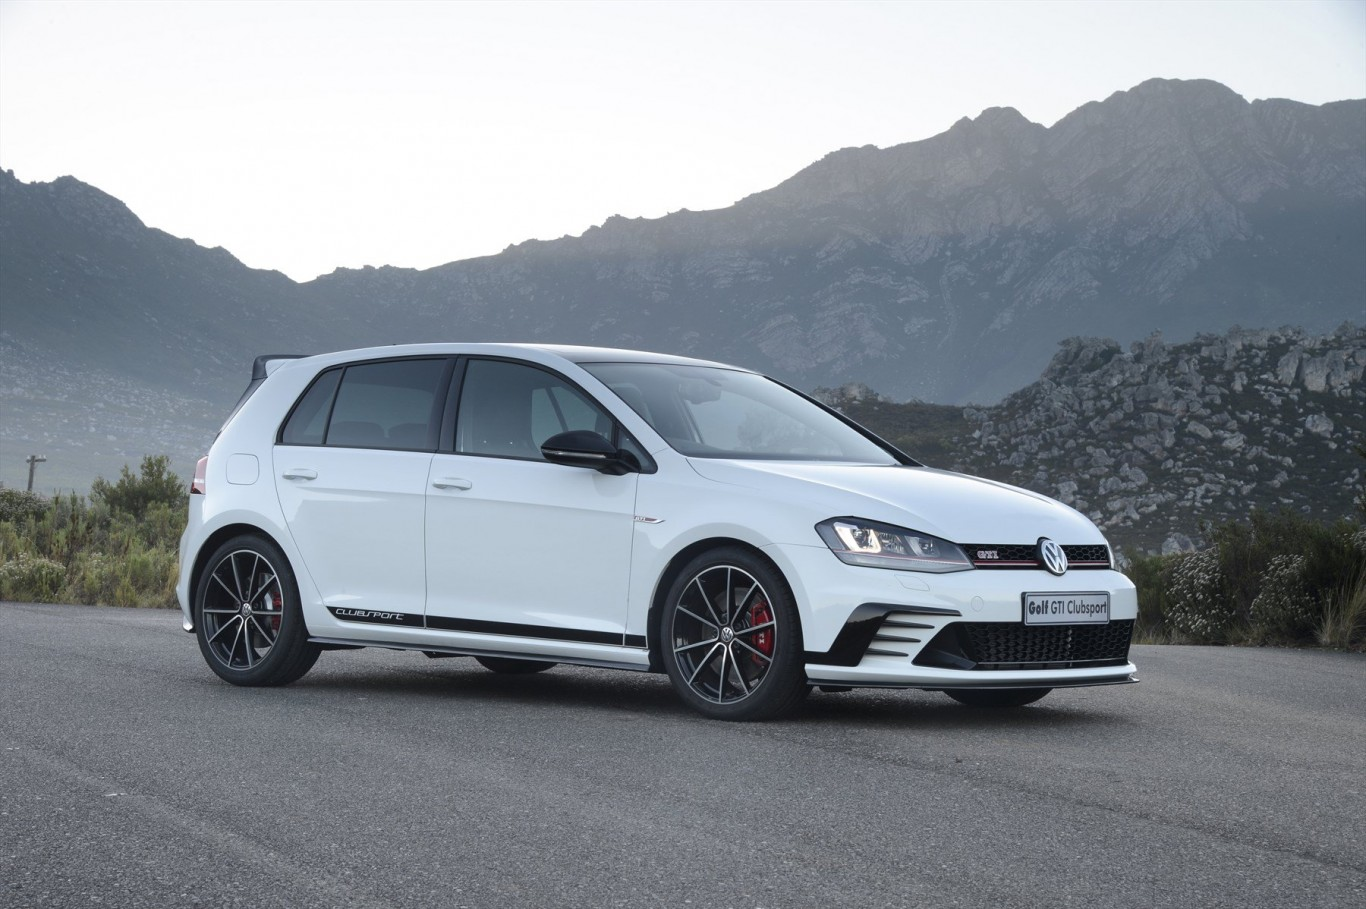 launch of the new golf gti clubsport in 2016 marked 40th anniversary of the icon road safety blog. Black Bedroom Furniture Sets. Home Design Ideas